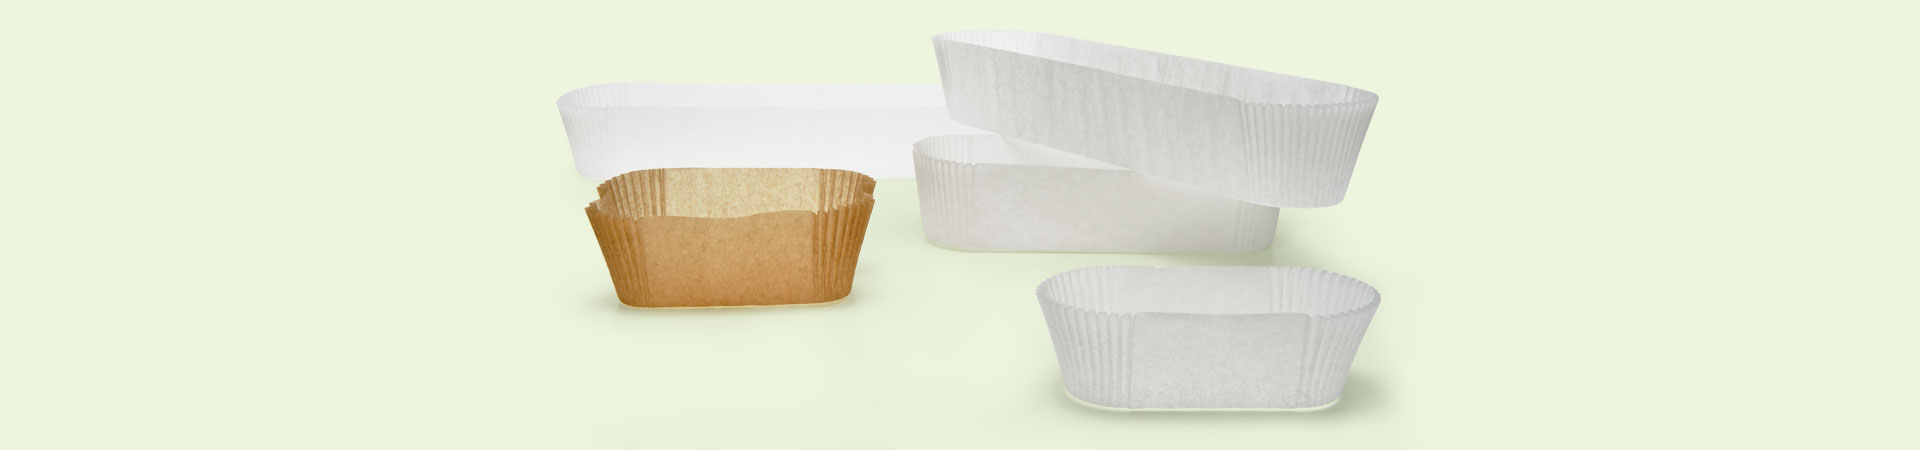 Techno Papier baking products for the food industry